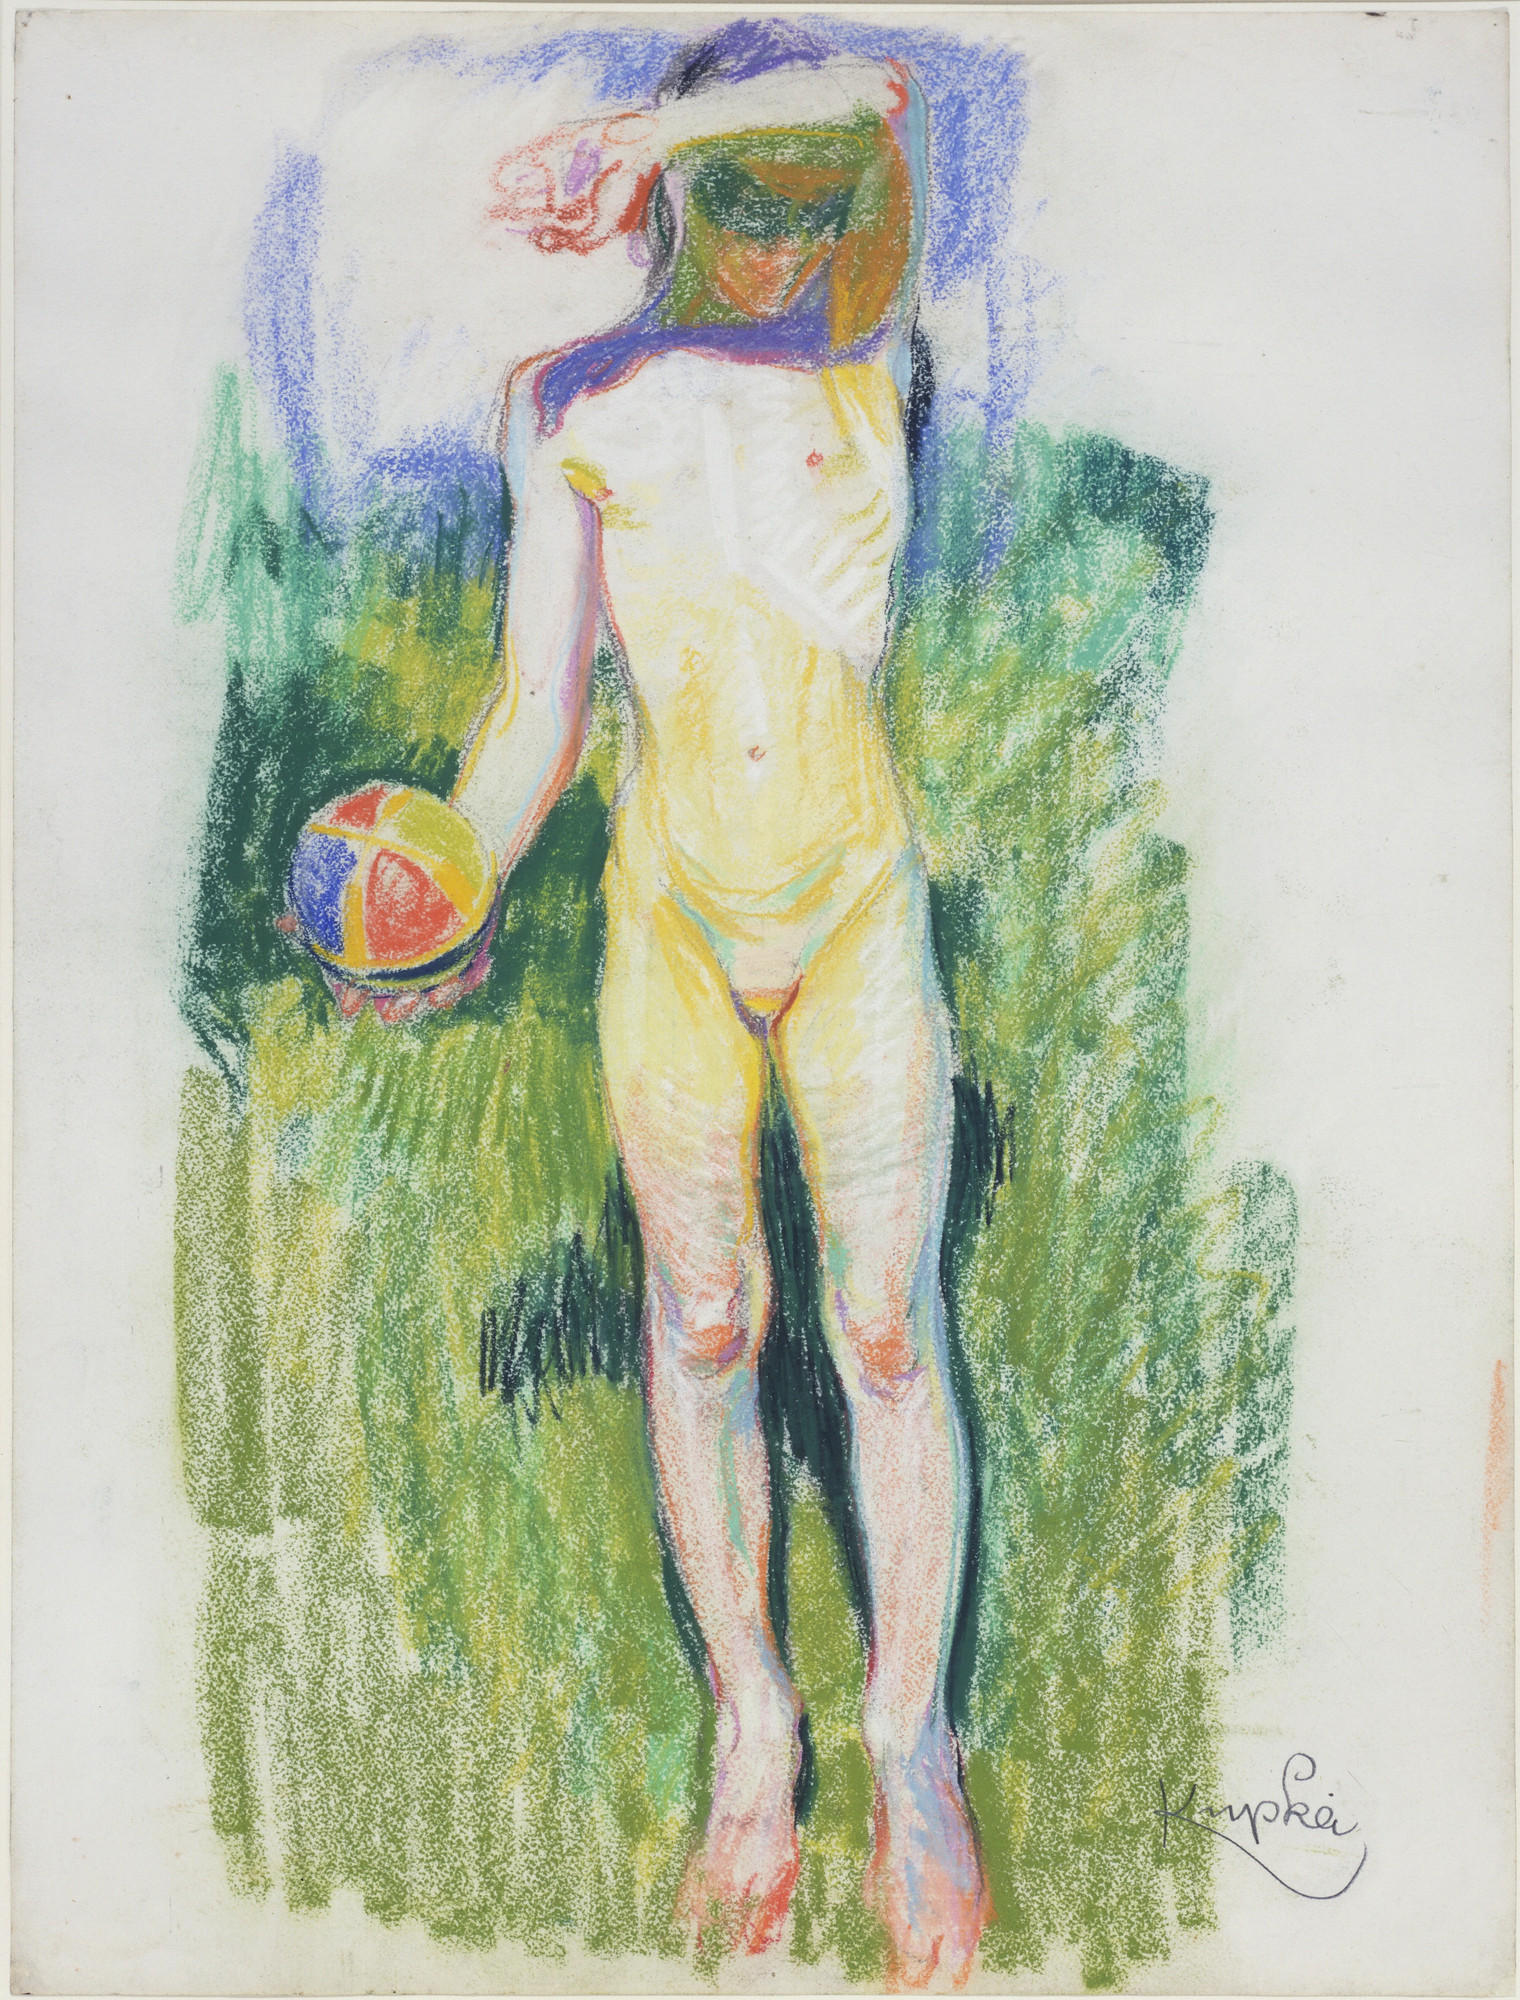 František Kupka. Girl with a Ball. c. 1908